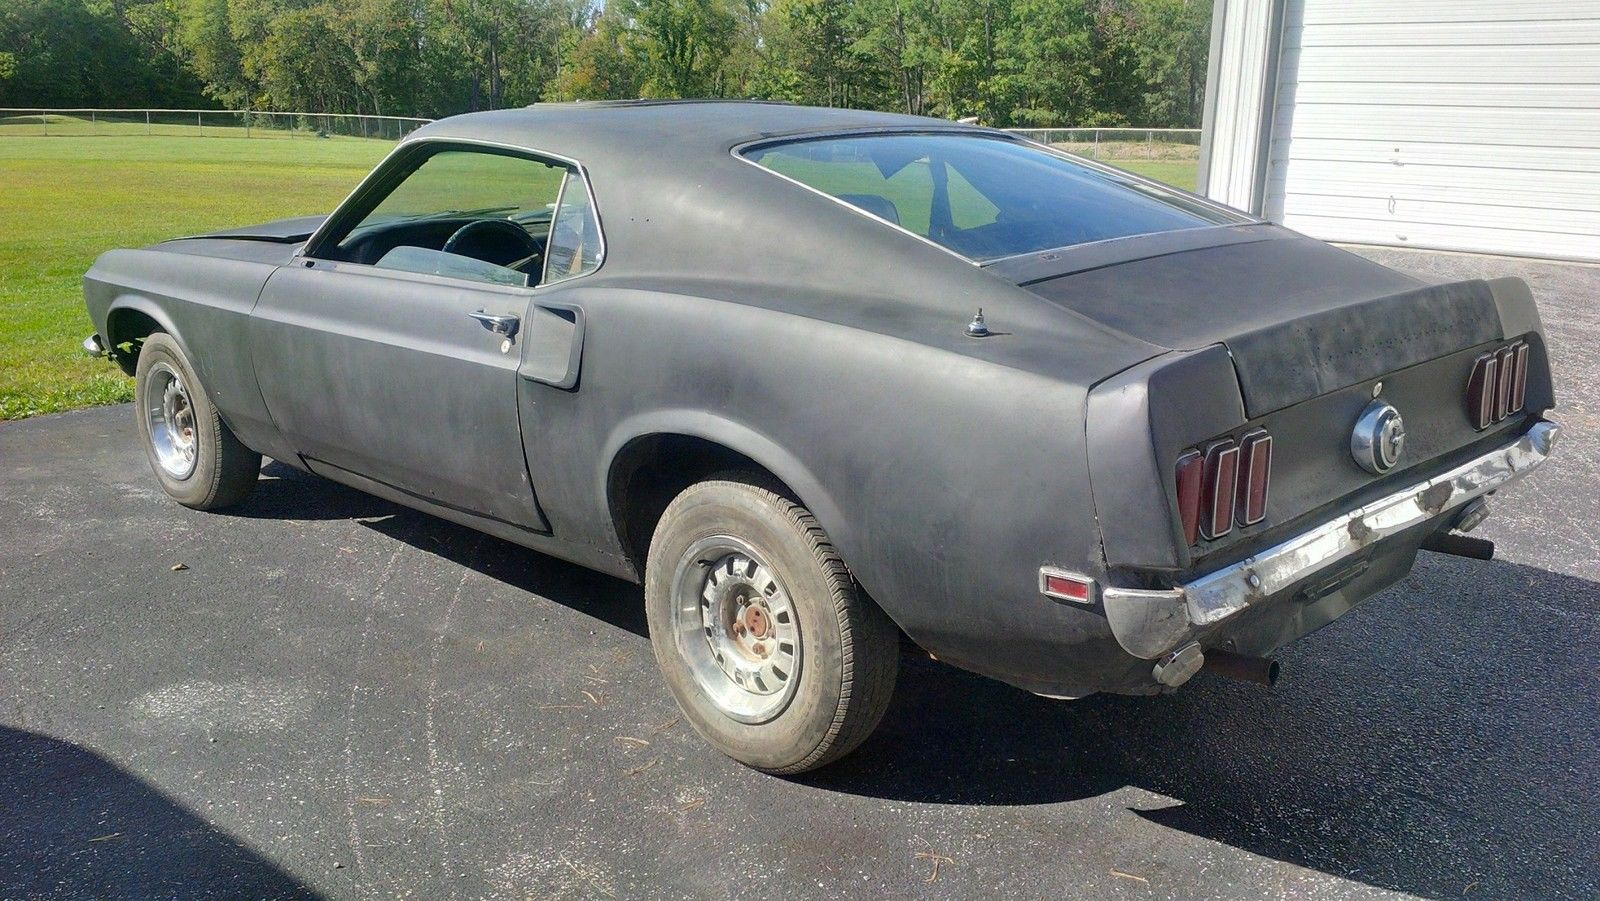 amazing 1969 ford mustang mach 1 1969 ford mustang mach 1 r code1969 Winter Blue Ford Mustang Mach 1 #15